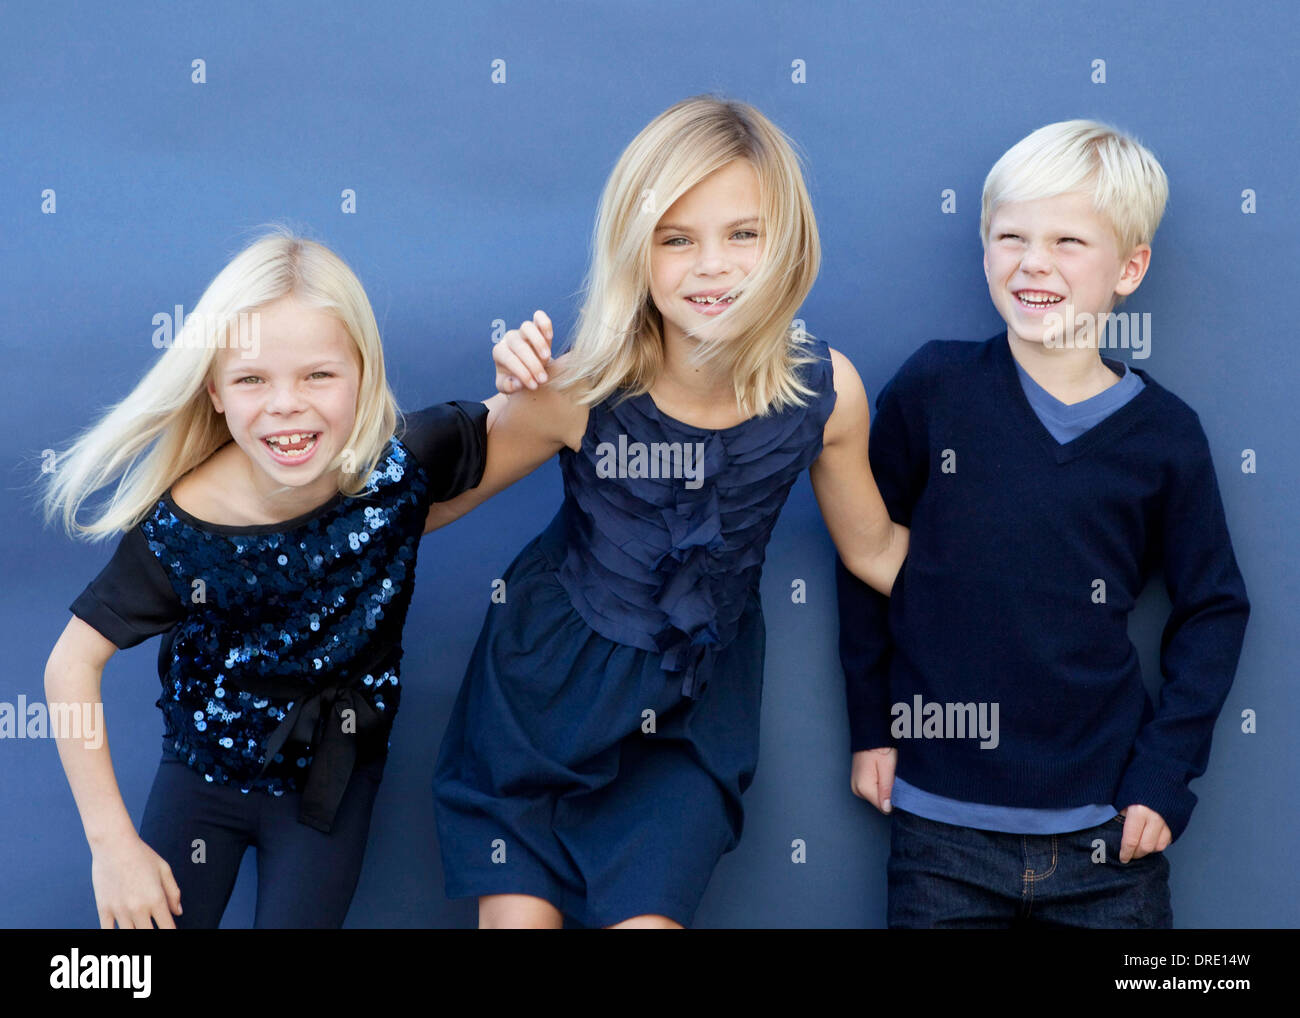 Portrait of siblings in front of blue background - Stock Image